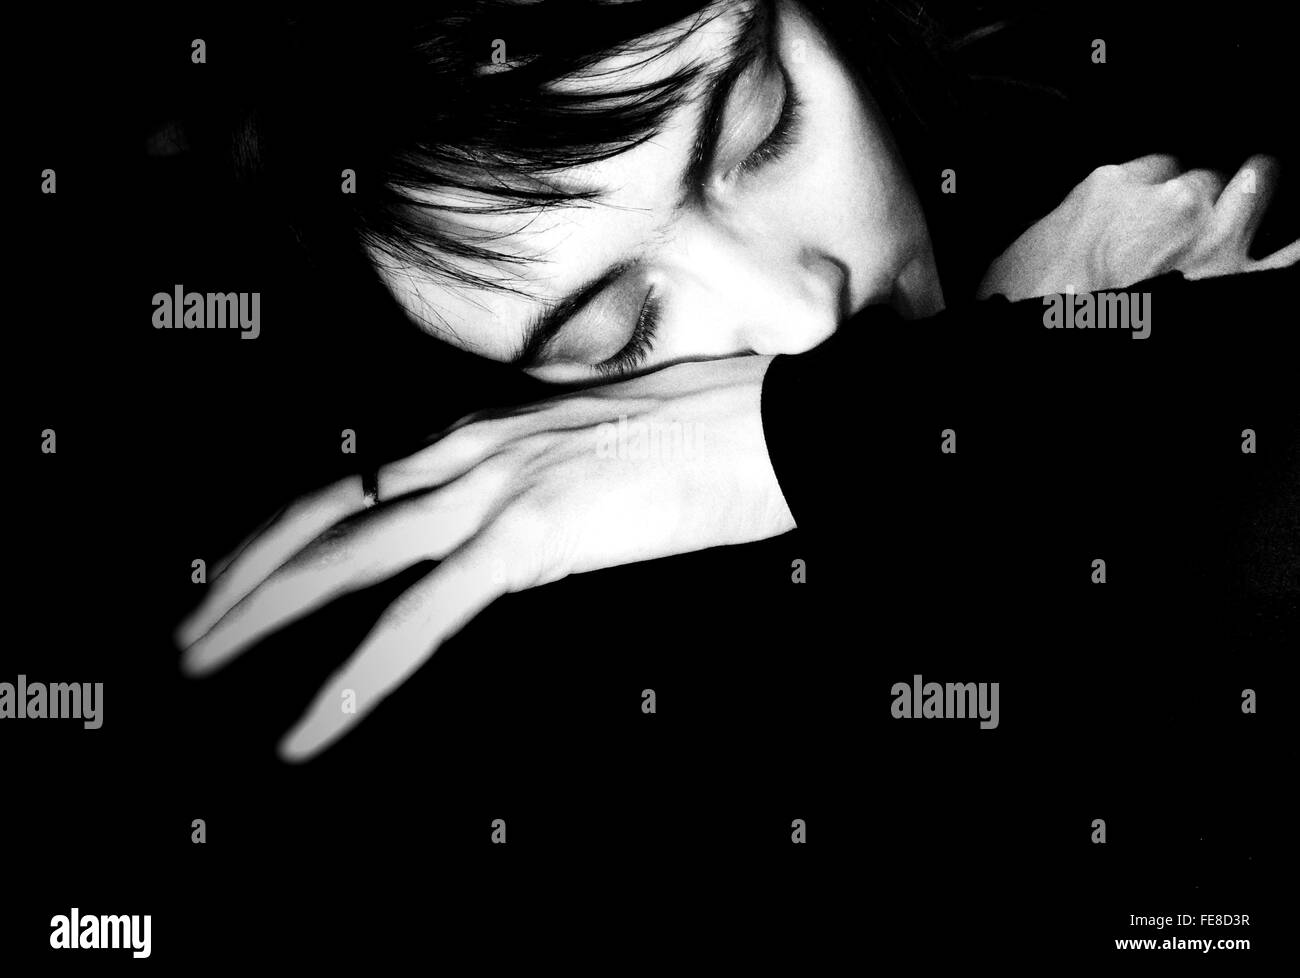 Portrait Of Woman Sleeping - Stock Image